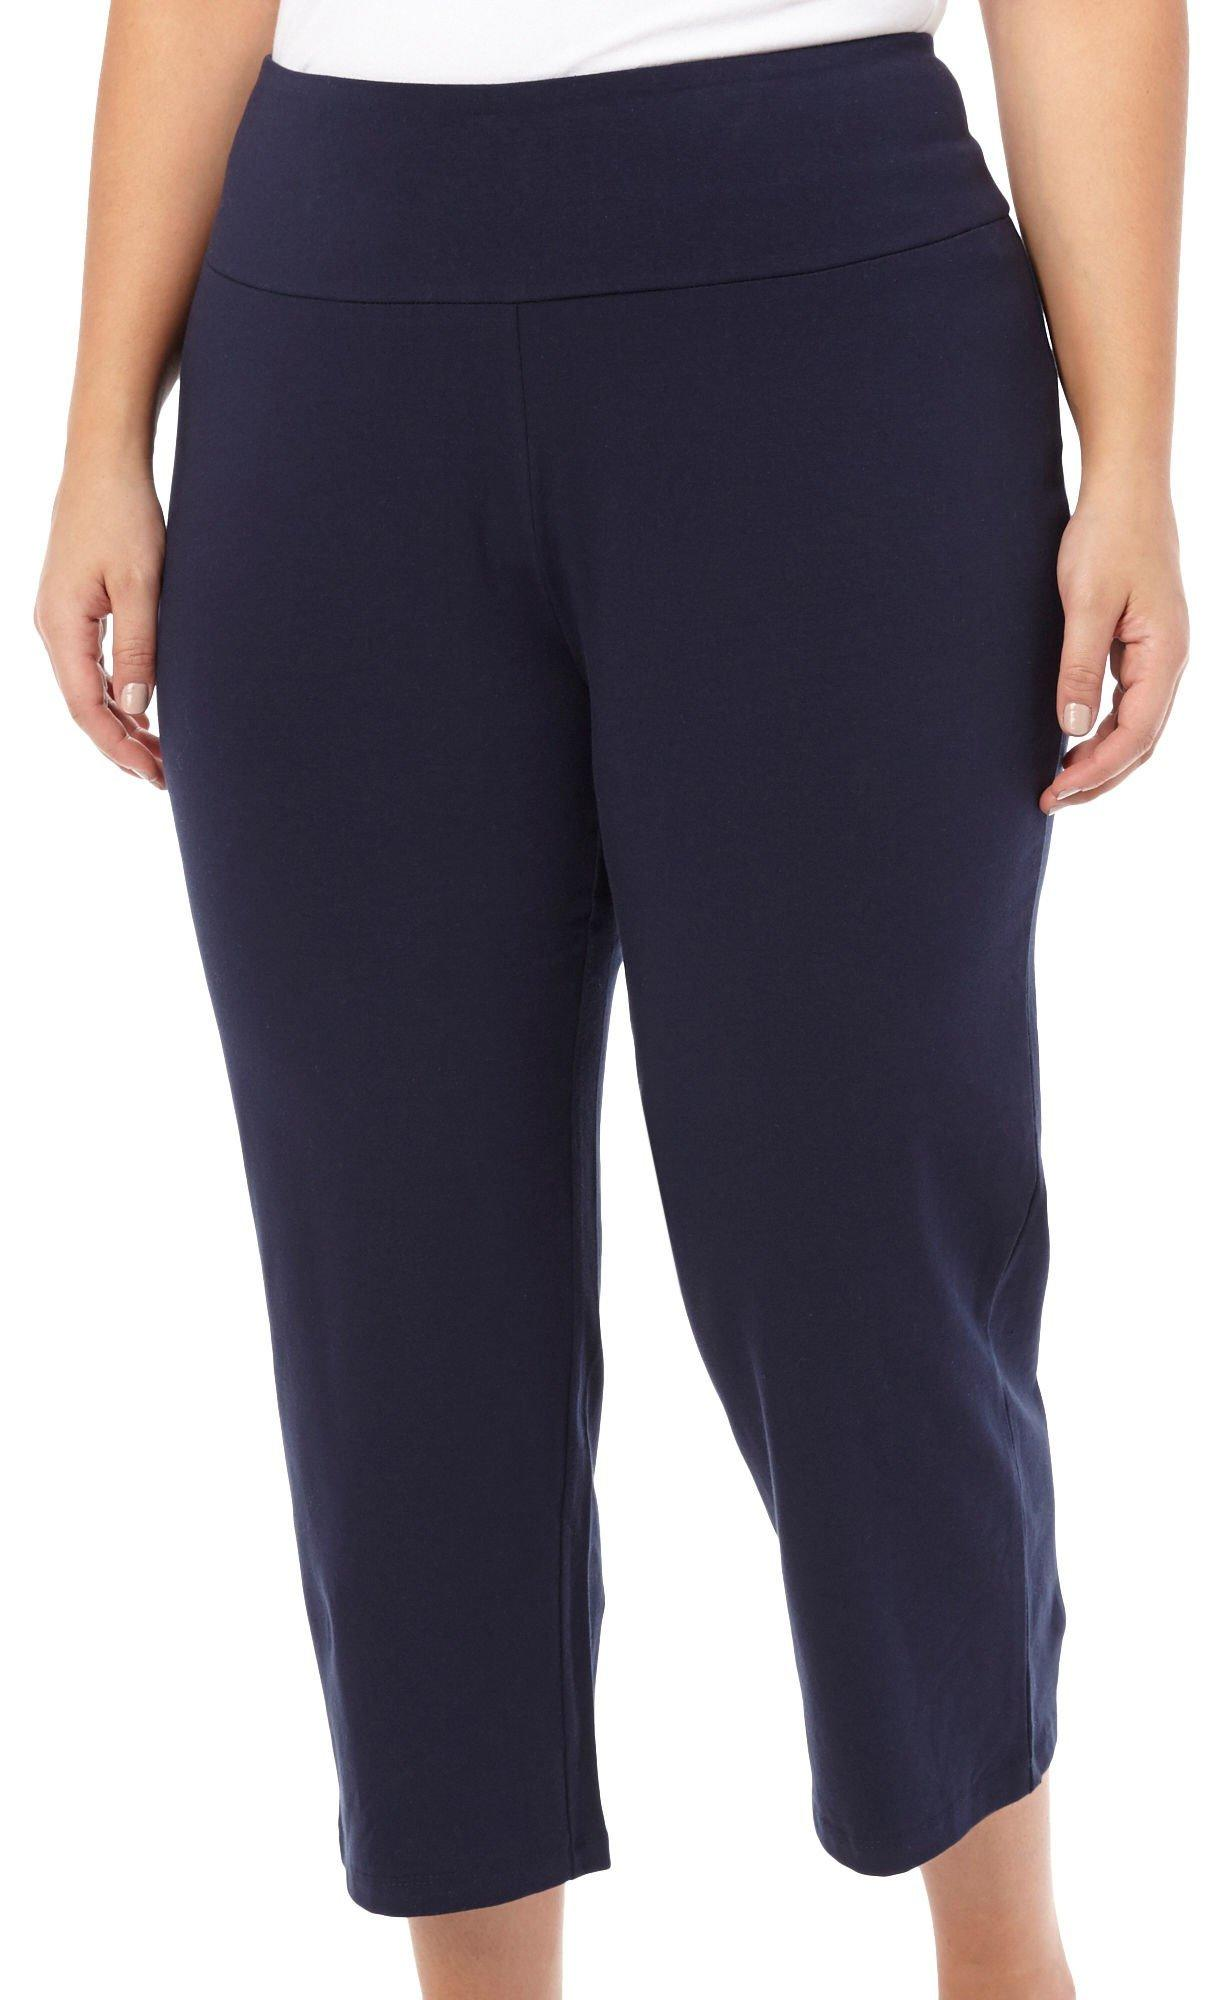 Coral Bay Energy Plus Absolute Summer Essential Solid Capris